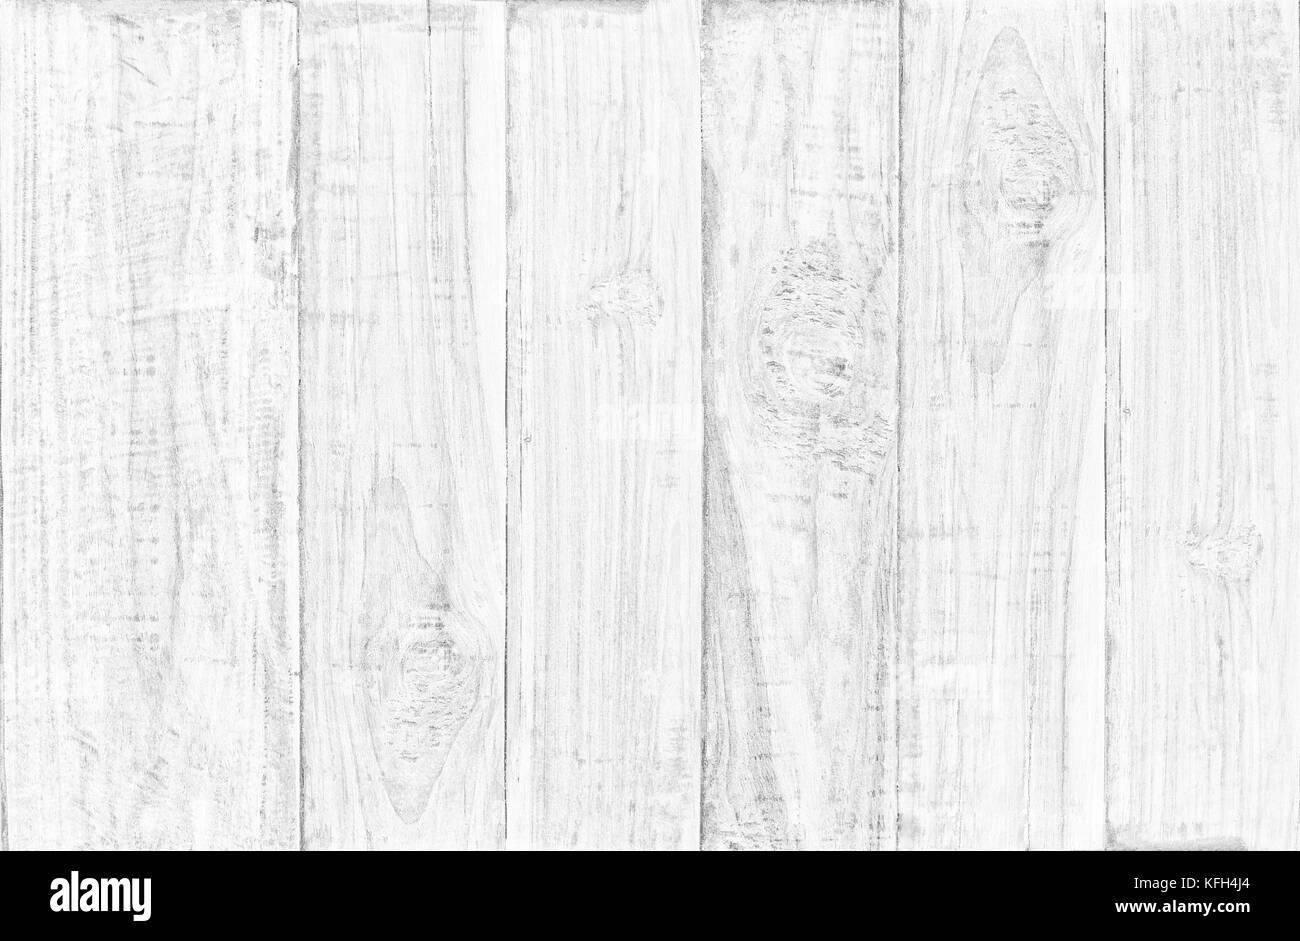 White wood table top view background use us wooden texture background for backdrop design - Stock Image